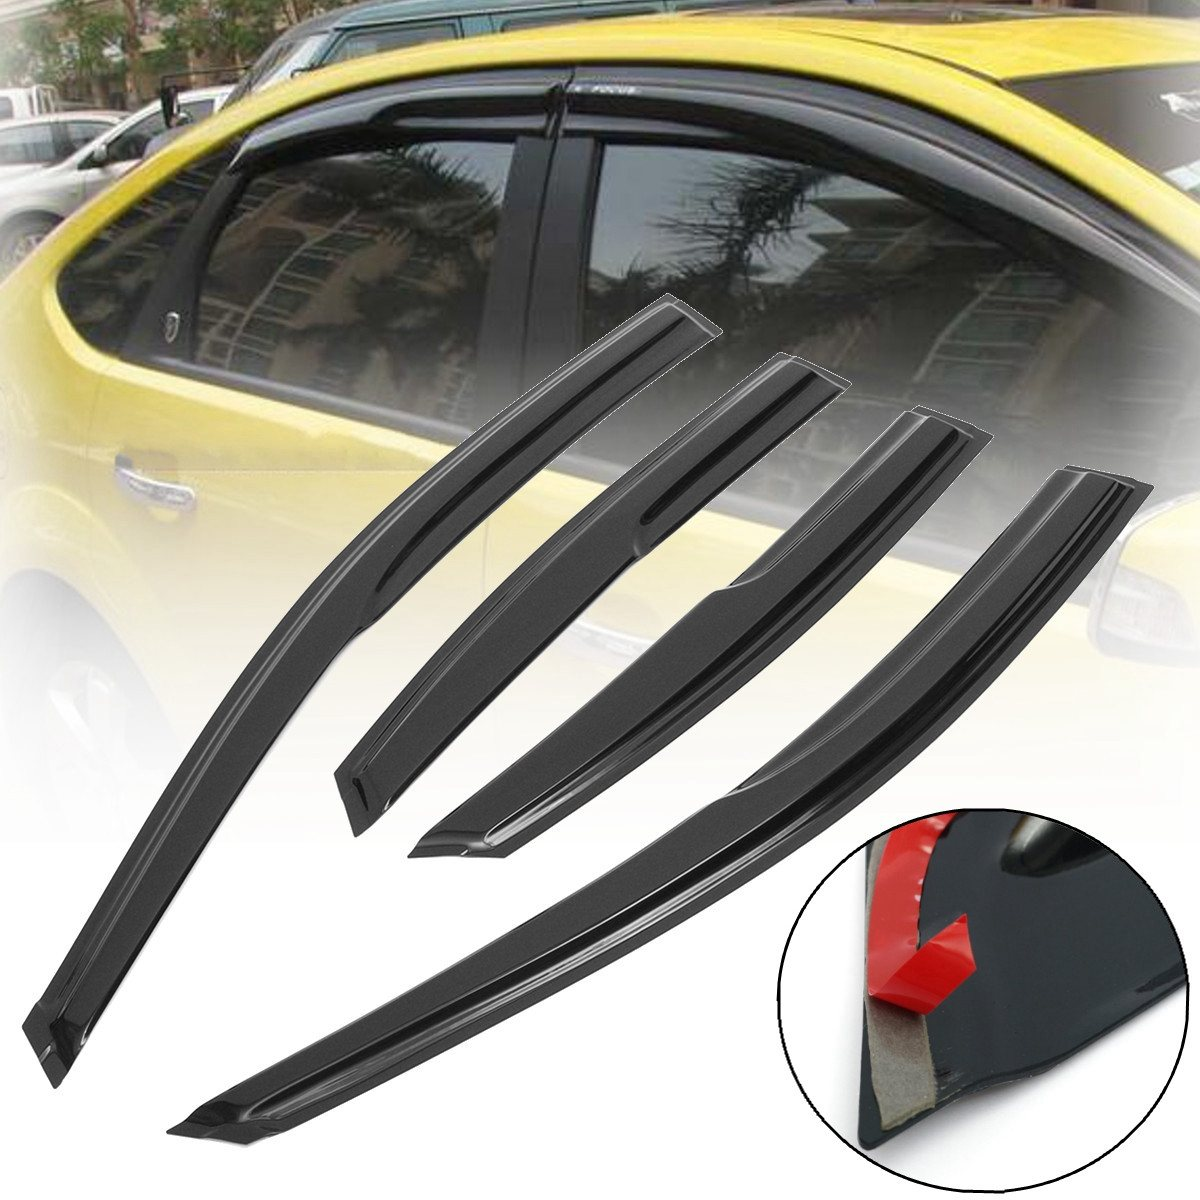 4pcs set car door window wind visor moulding awnings shield rain sun wind guard vent shade for ford focus 2005 2011 car styling